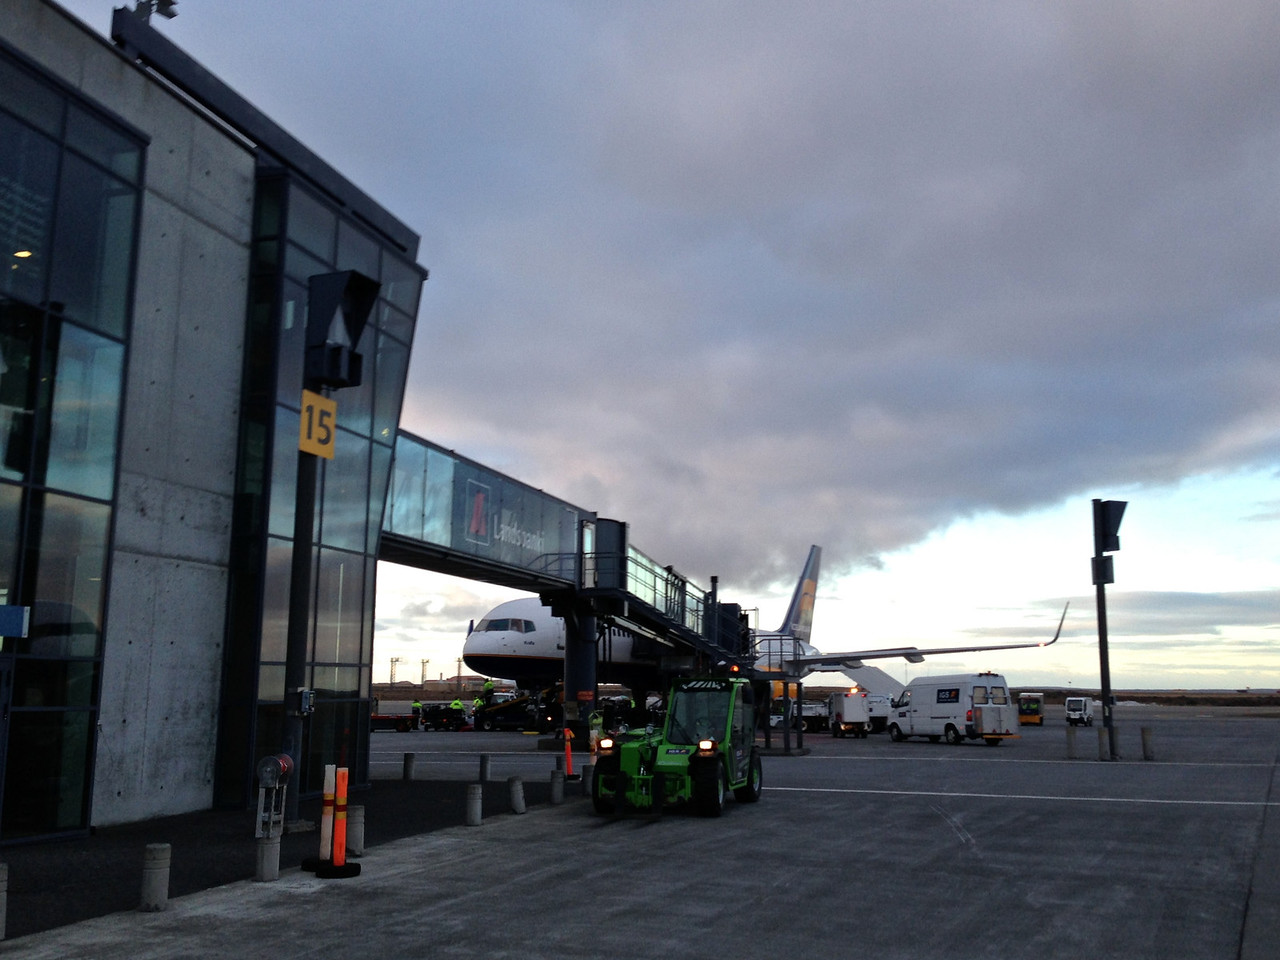 Most flights from the US and Canada leave late in the day and arrive in Reykjavik in early morning.